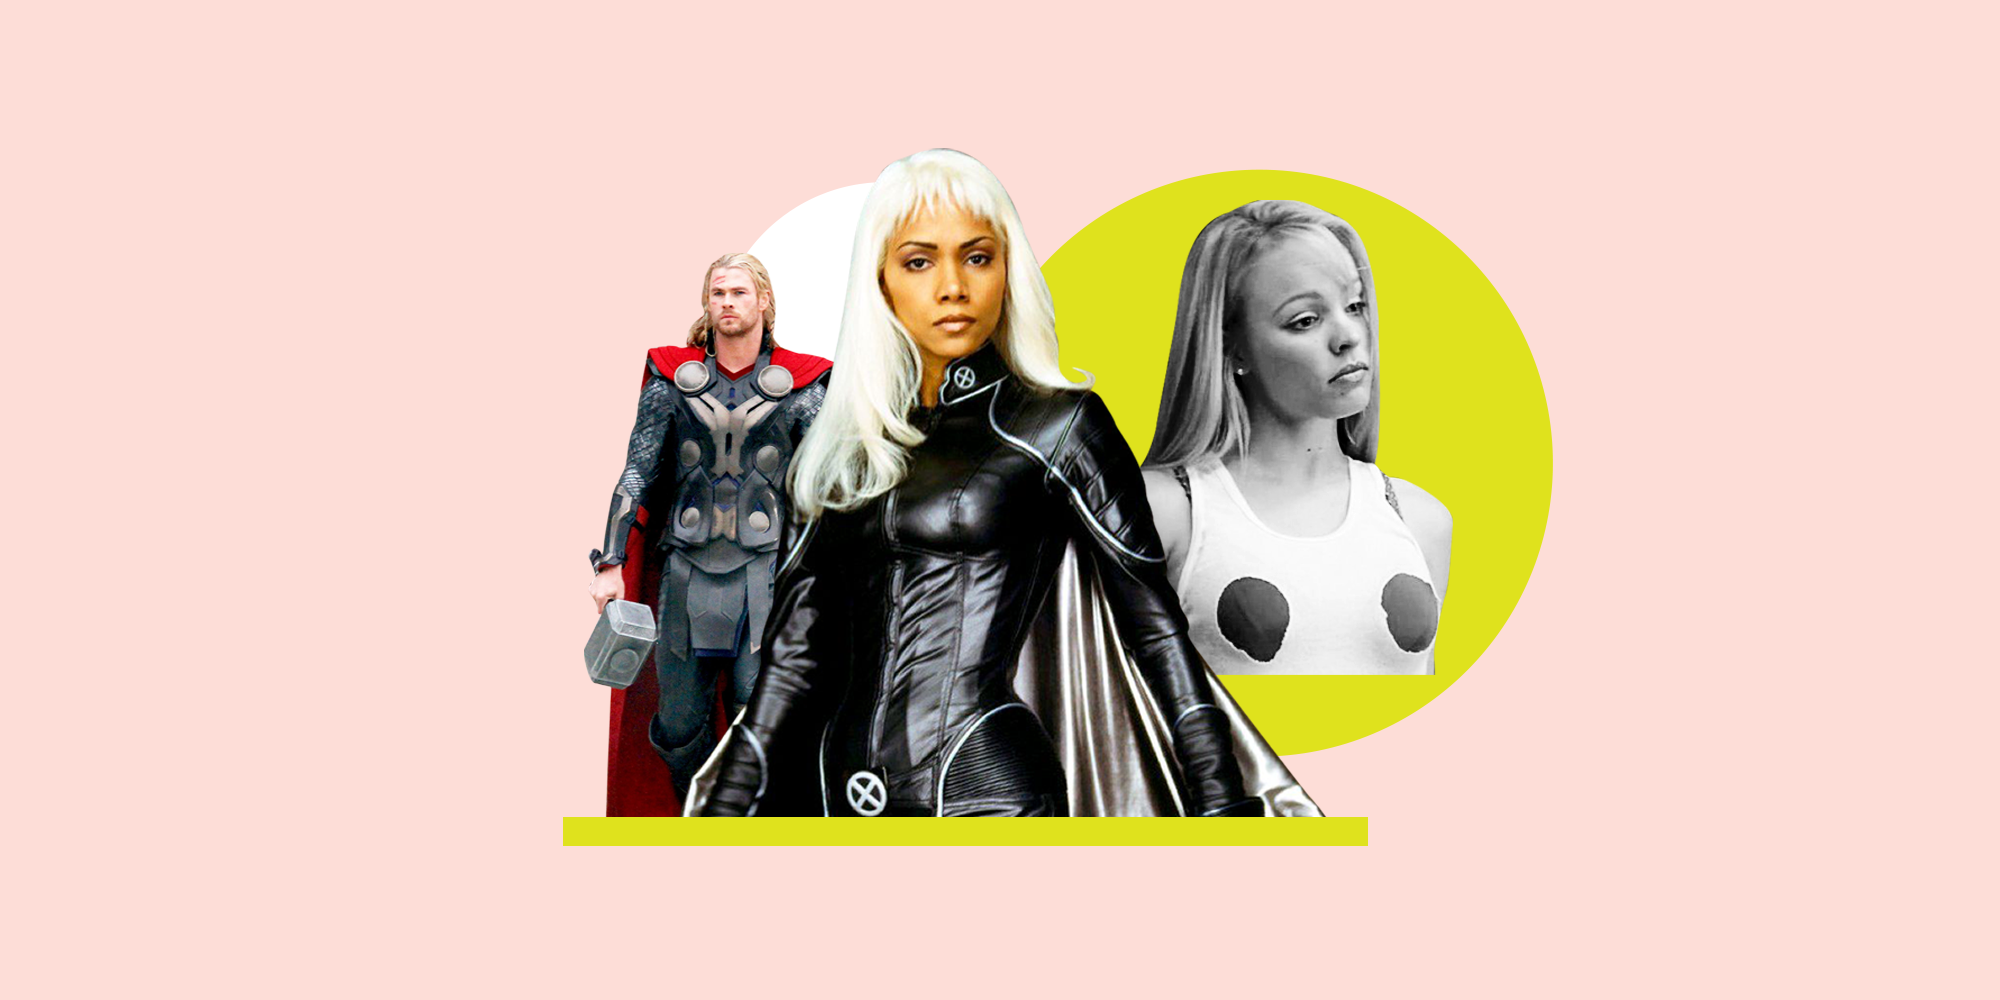 20 Classic Blonde Halloween Costumes To Wear In 2020